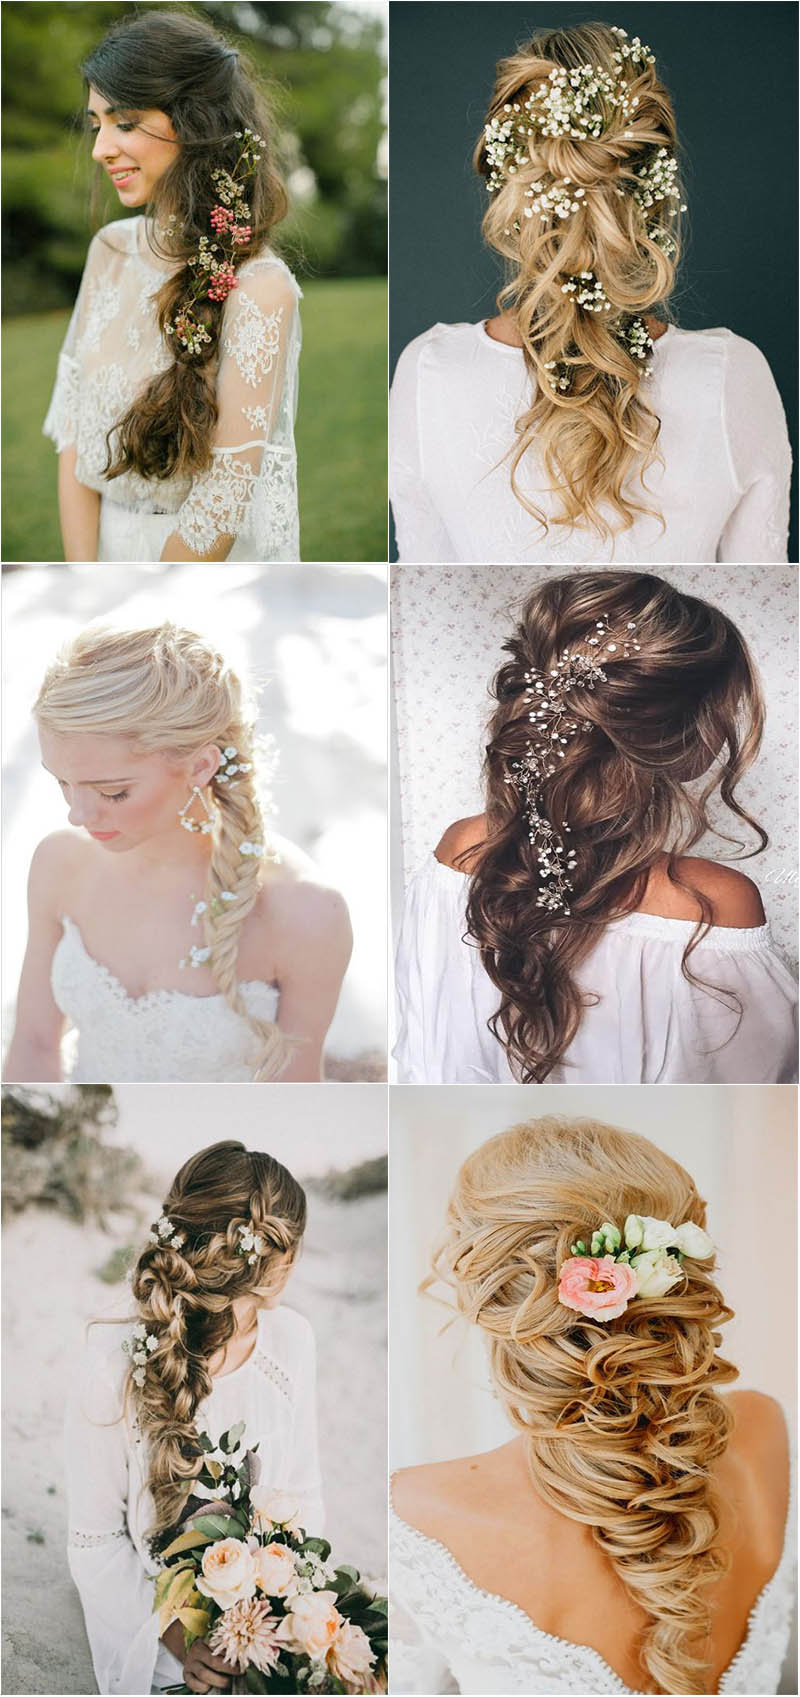 24 Awesome Wedding Hairstyles with Flowers